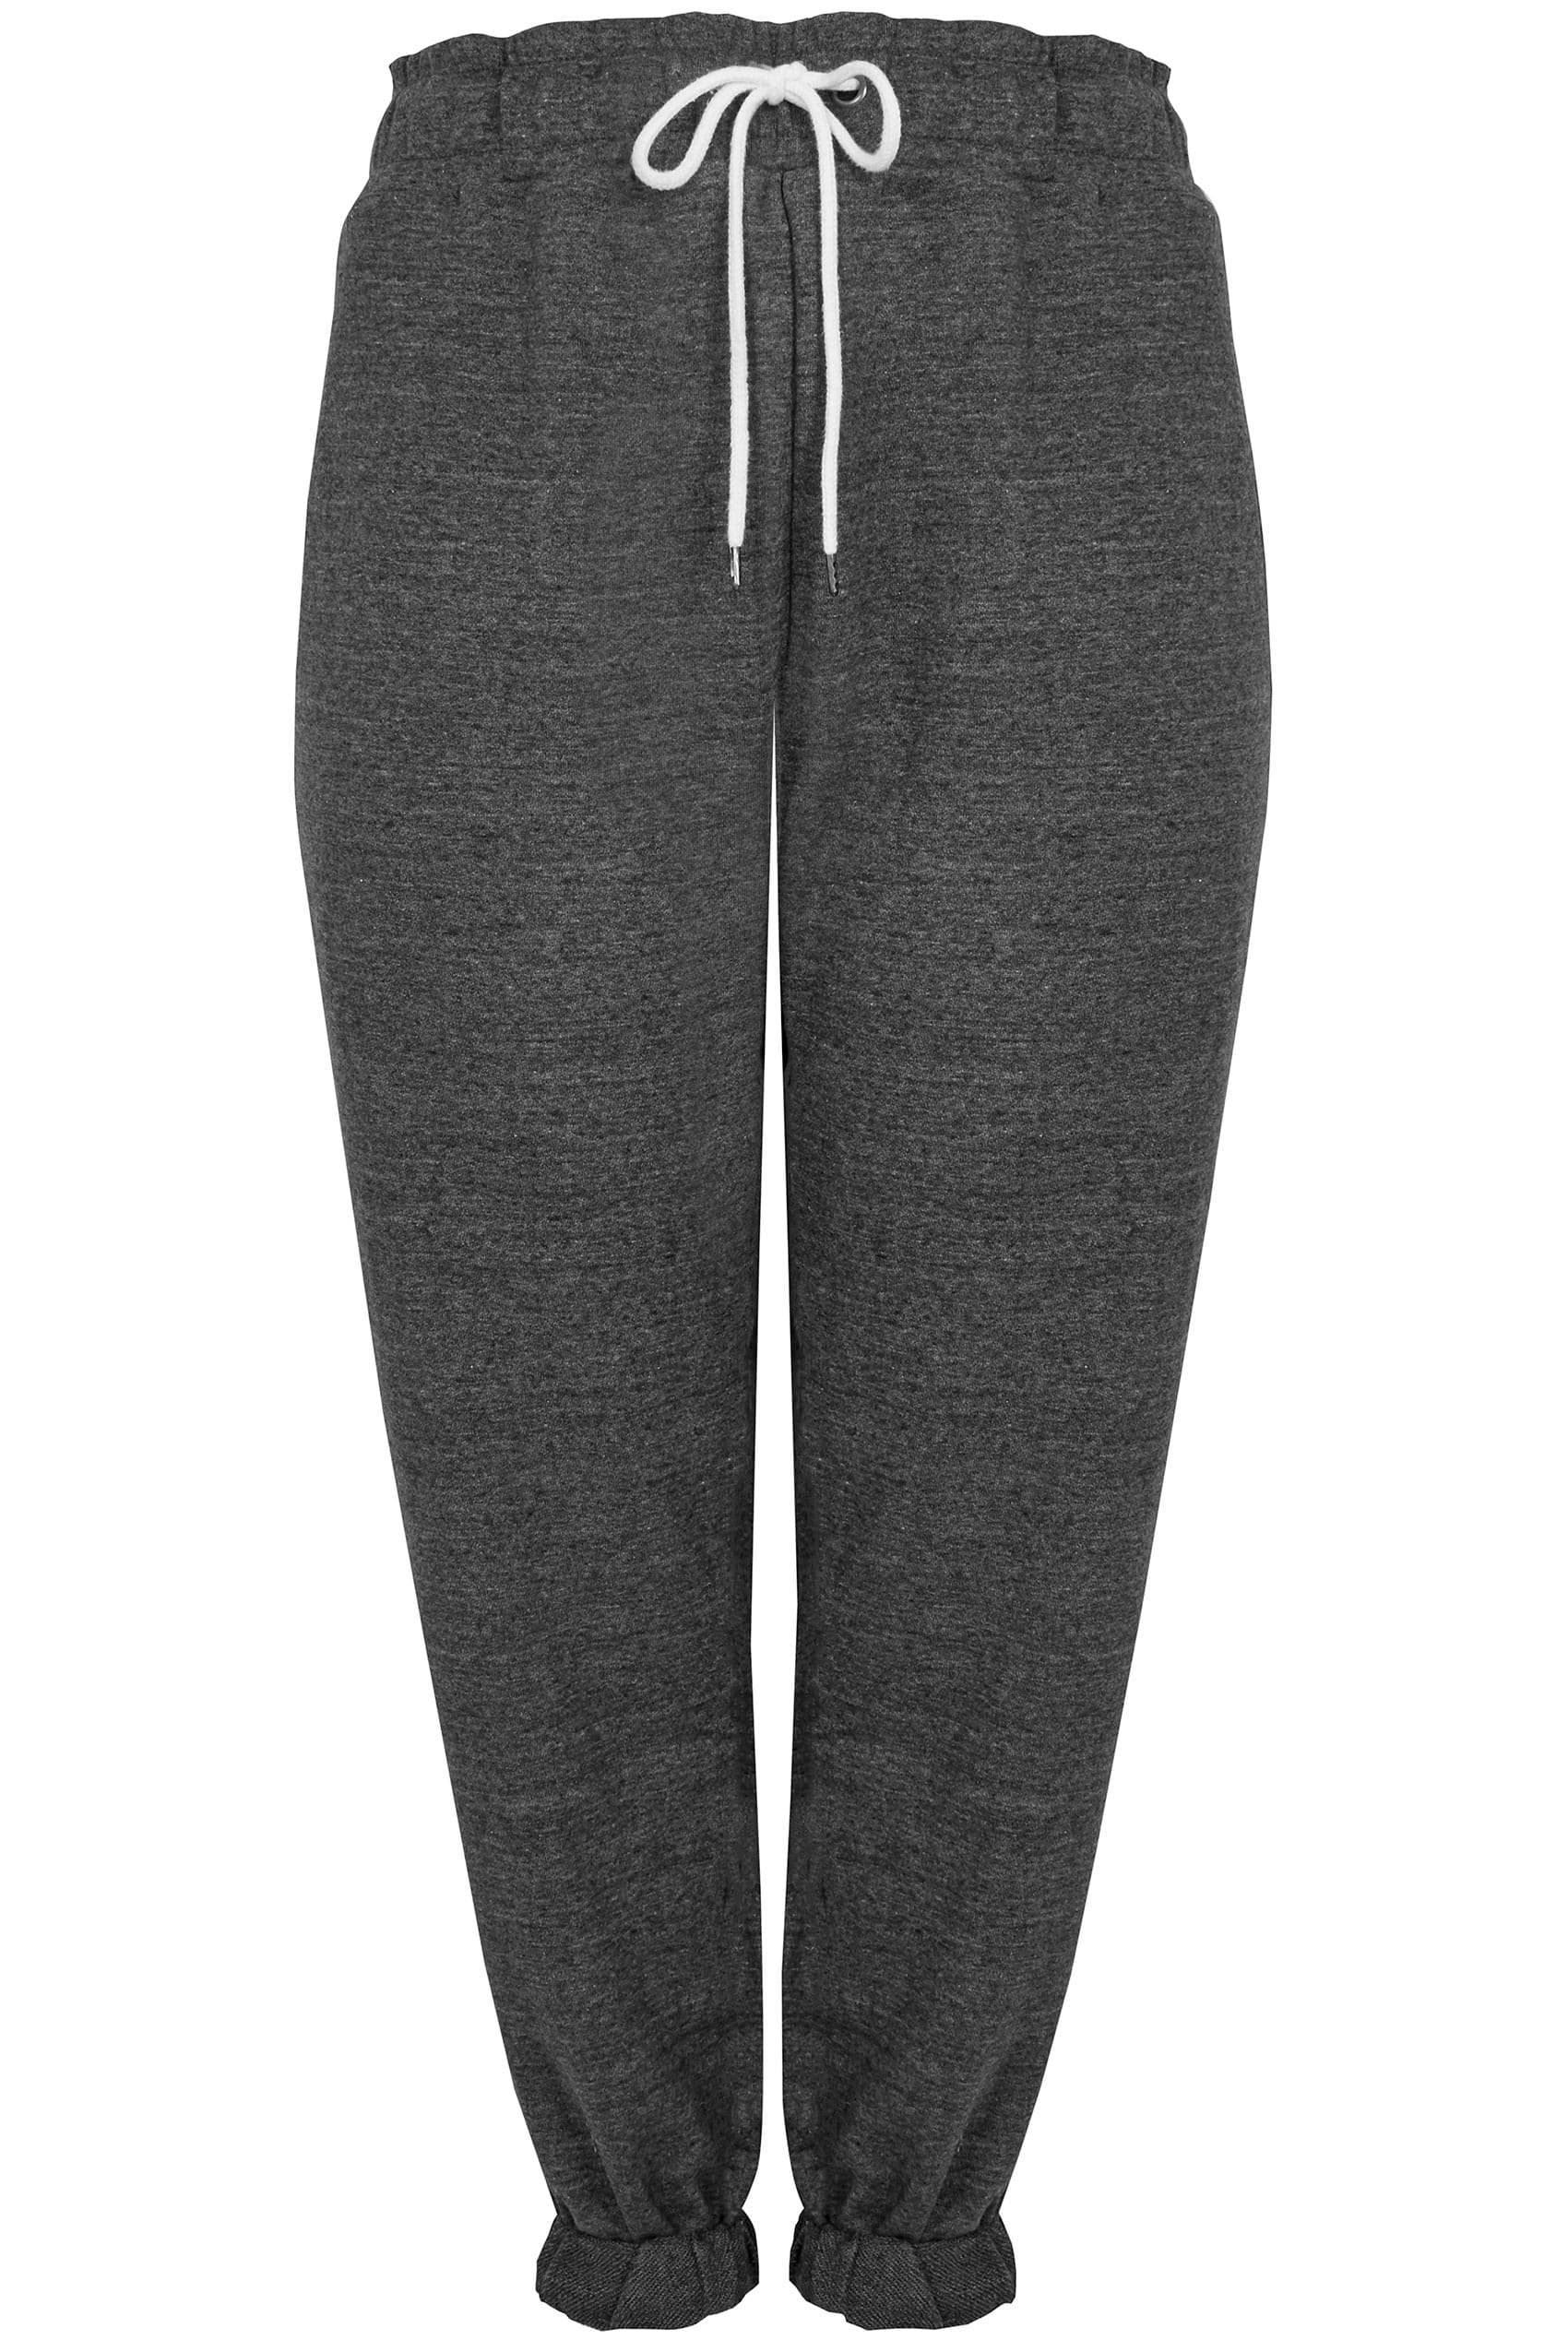 pantalon de jogging gris avec ourlets lastiques aux chevilles taille 44 64. Black Bedroom Furniture Sets. Home Design Ideas